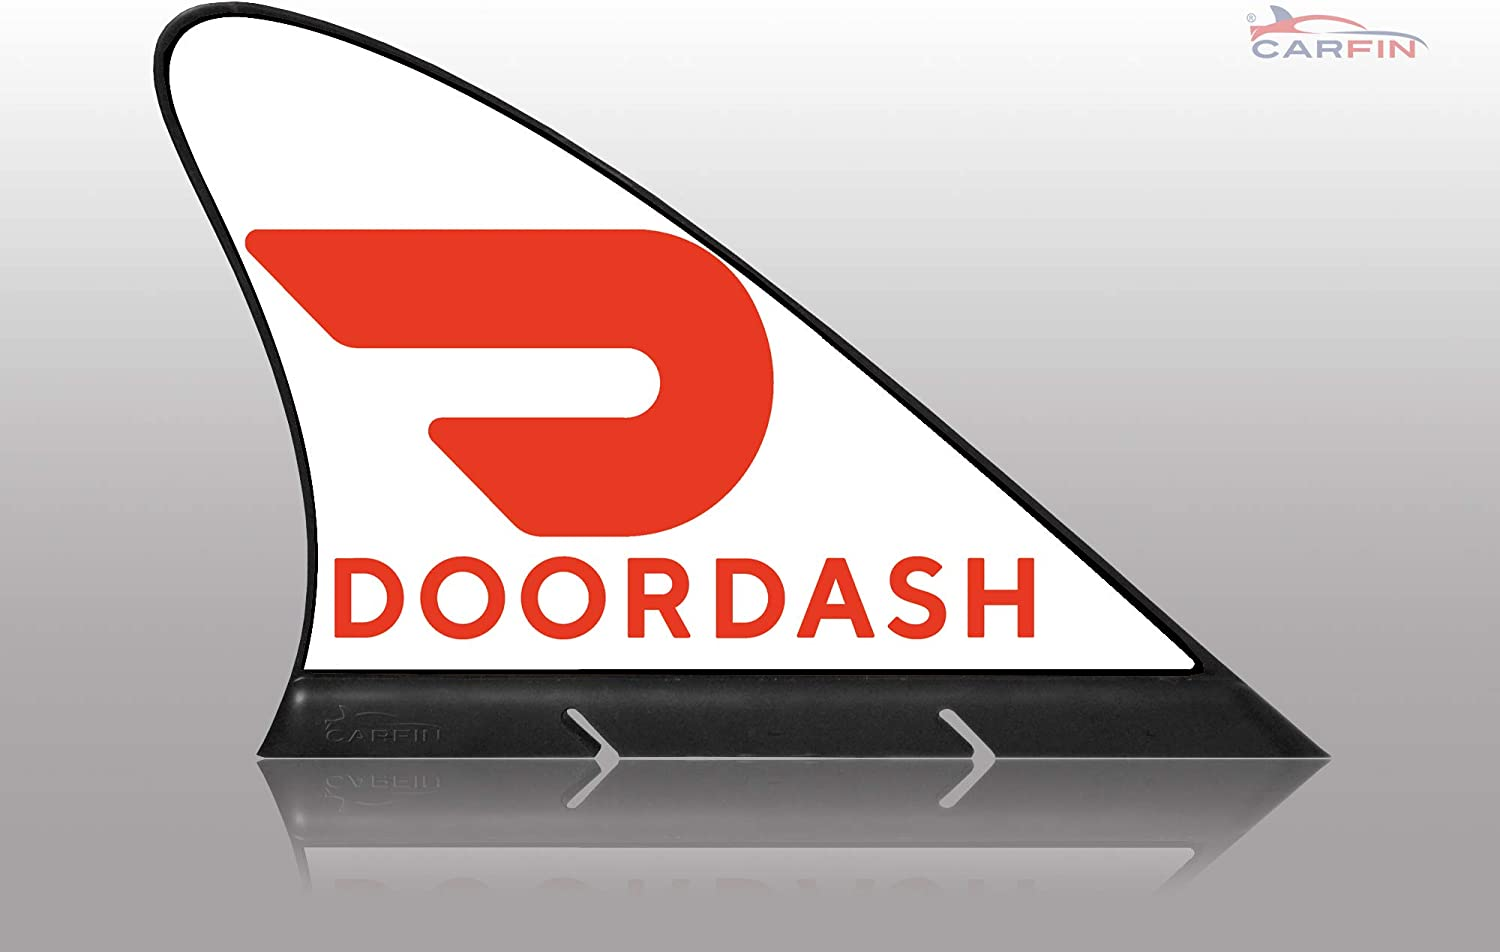 CARFIN Doordash Magnetic Car Sign White, Sign